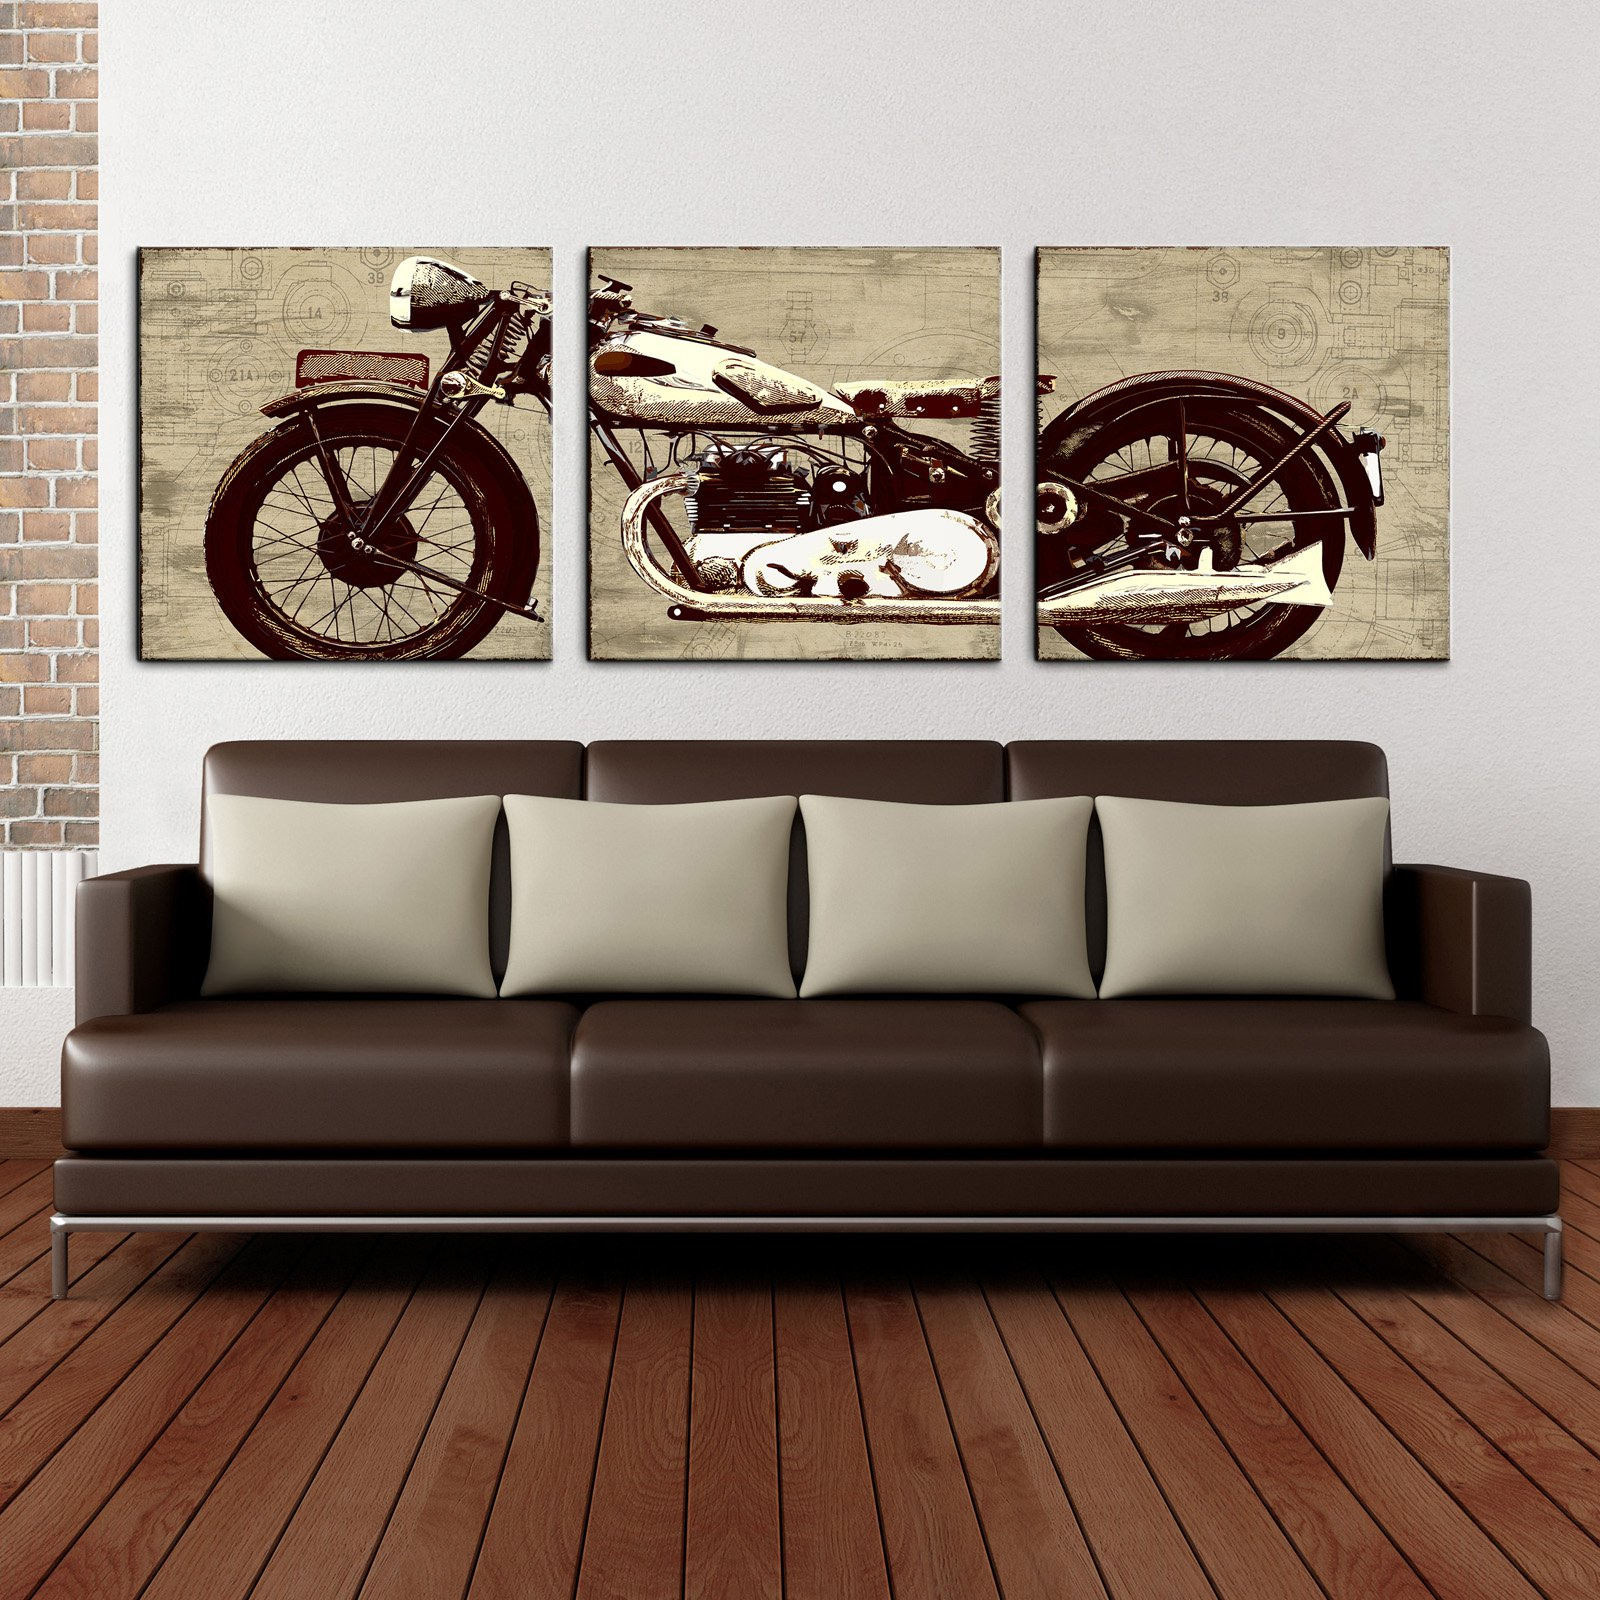 motorcycle 24 x 72 canvas art print triptych